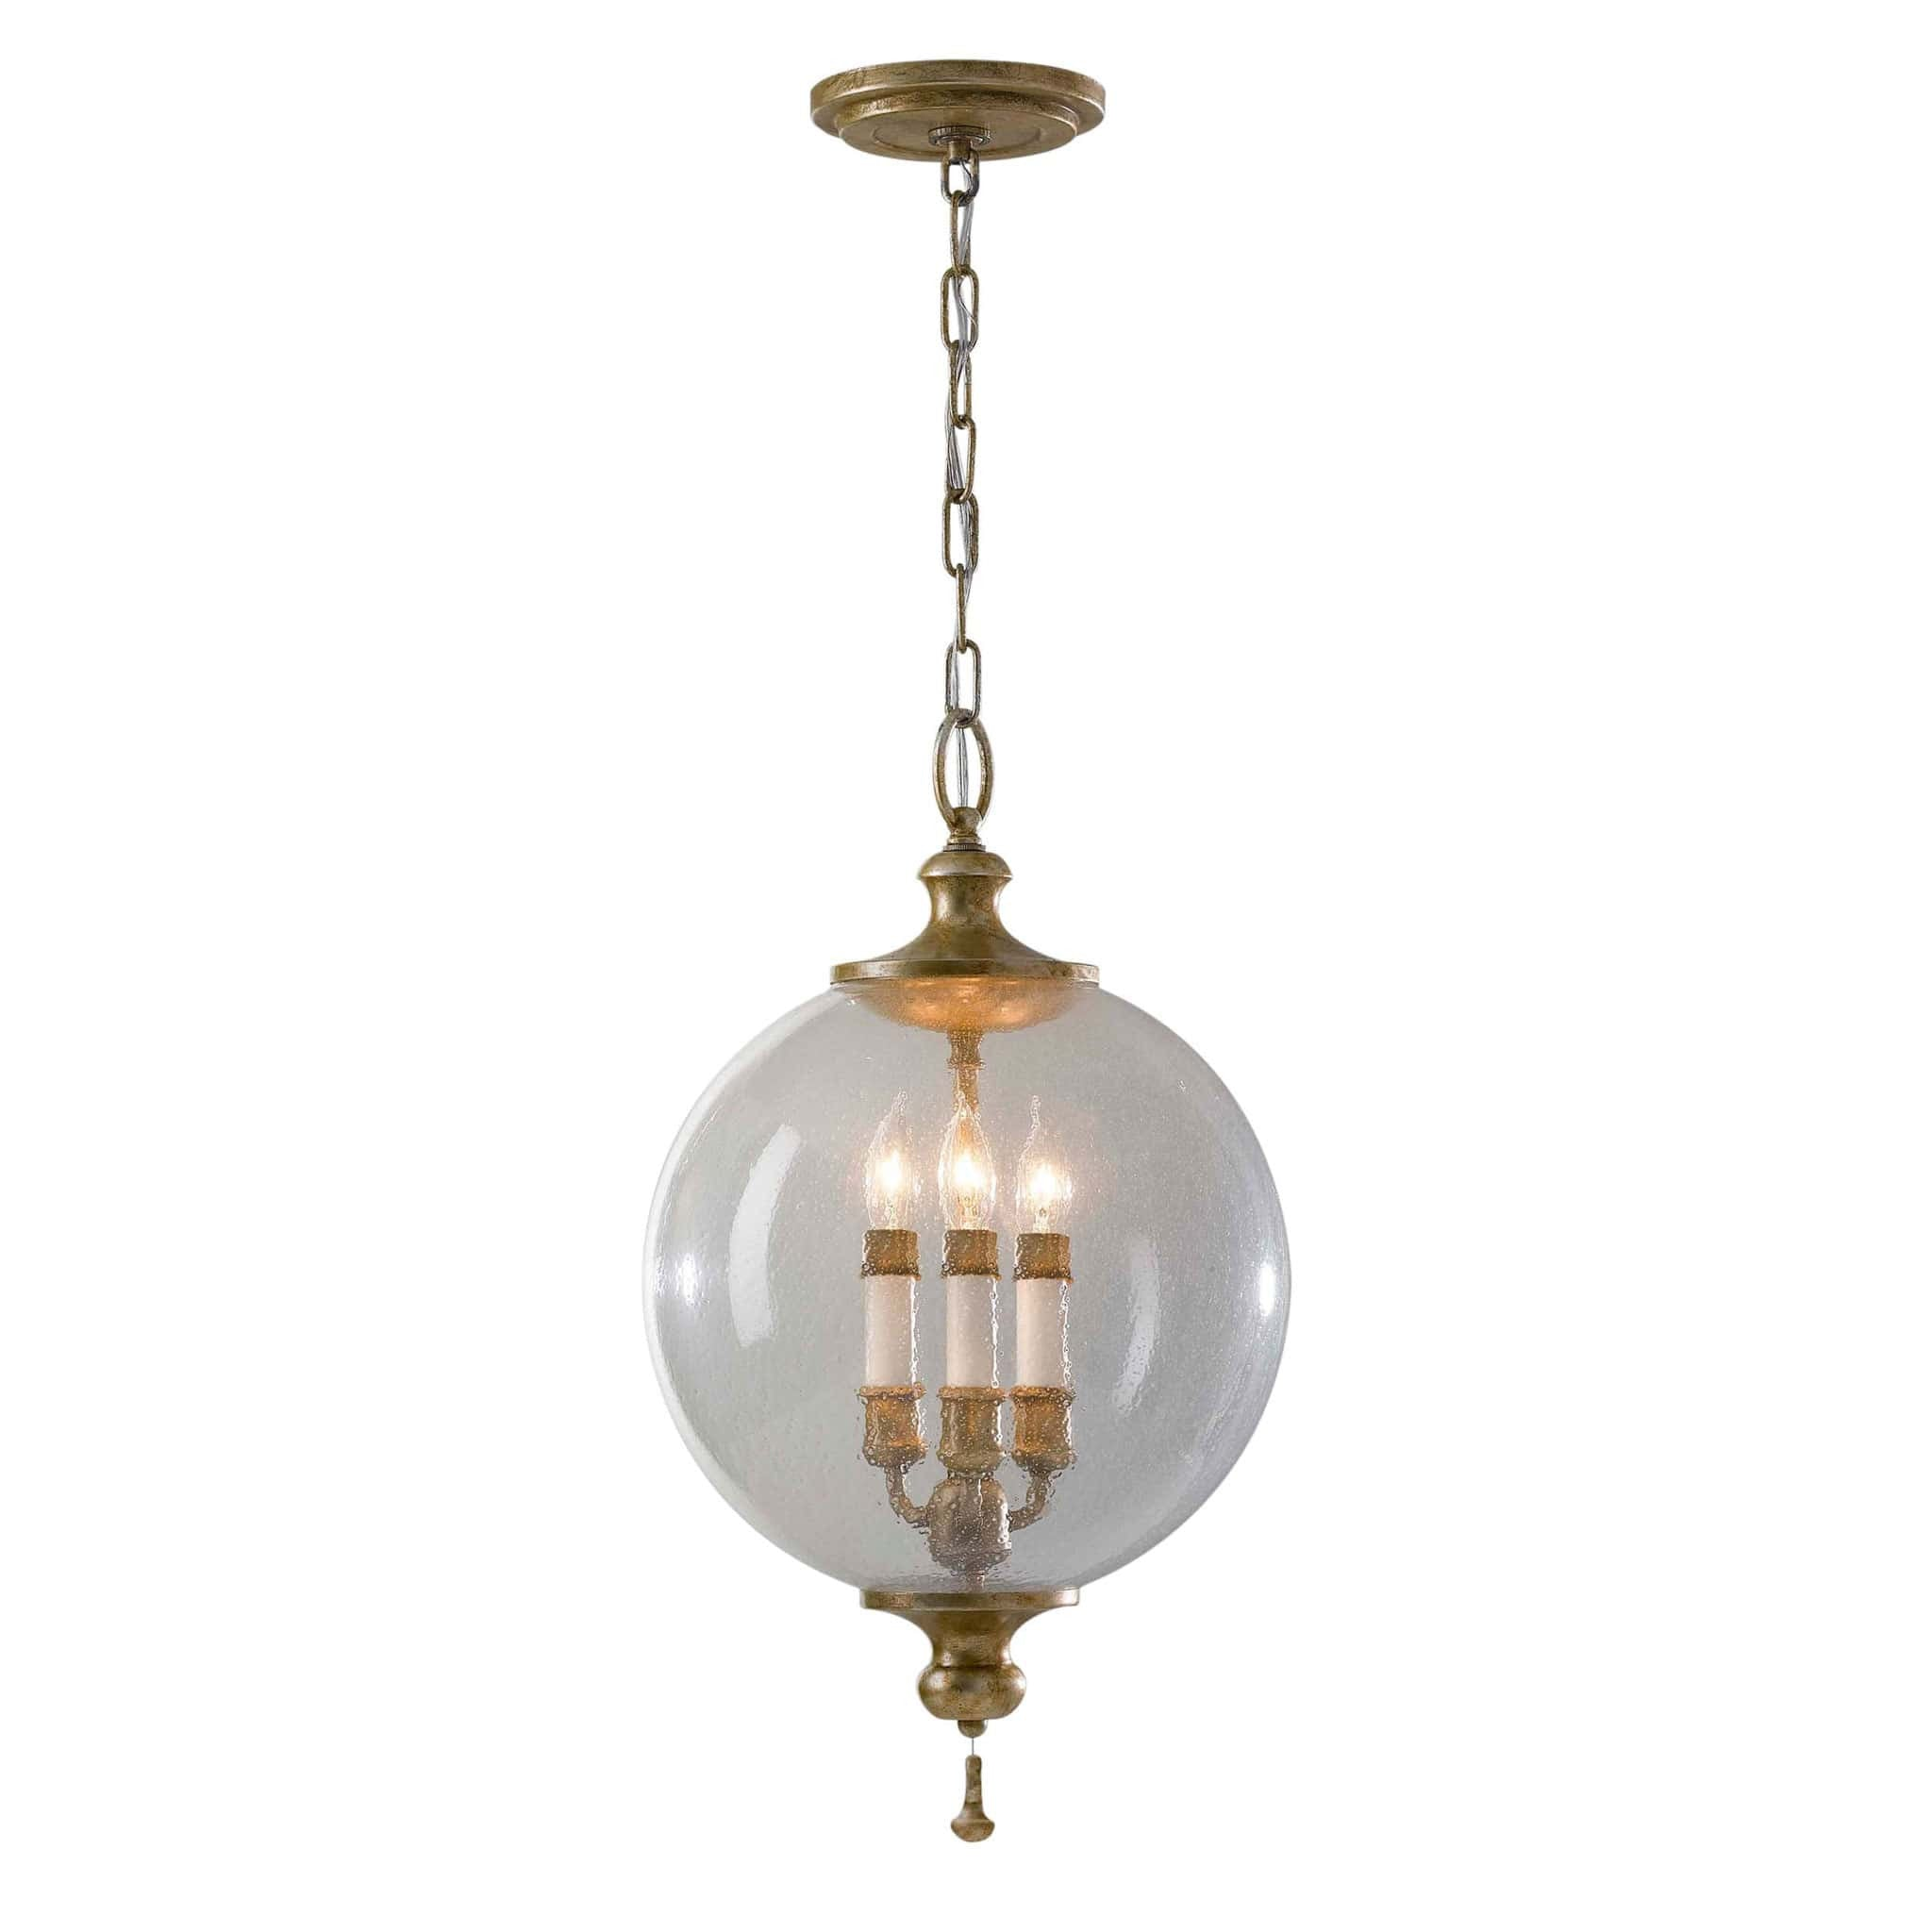 inch ea diam copper glass mezzo finish rope length pendant